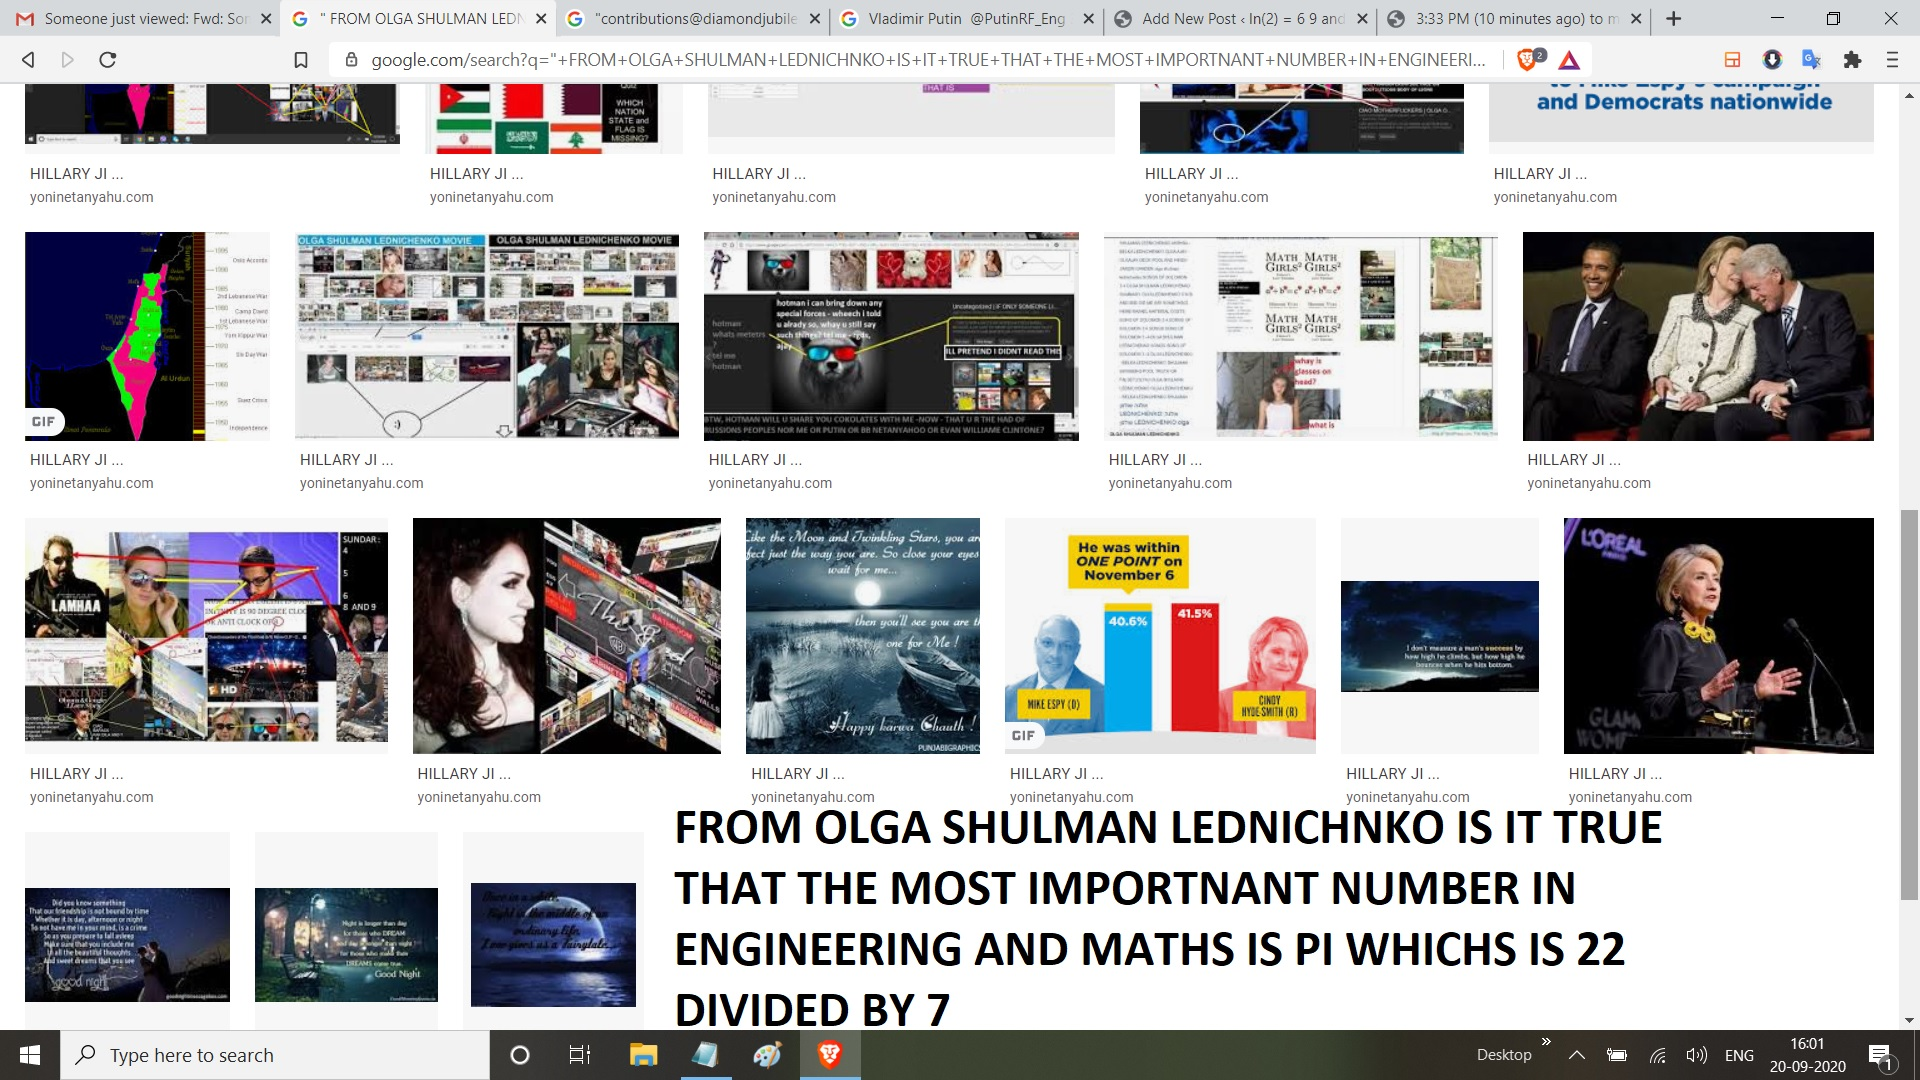 FROM OLGA SHULMAN LEDNICHNKO IS IT TRUE THAT THE MOST IMPORTNANT NUMBER IN ENGINEERING AND MATHS IS PI WHICHS IS 22 DIVIDED BY 7